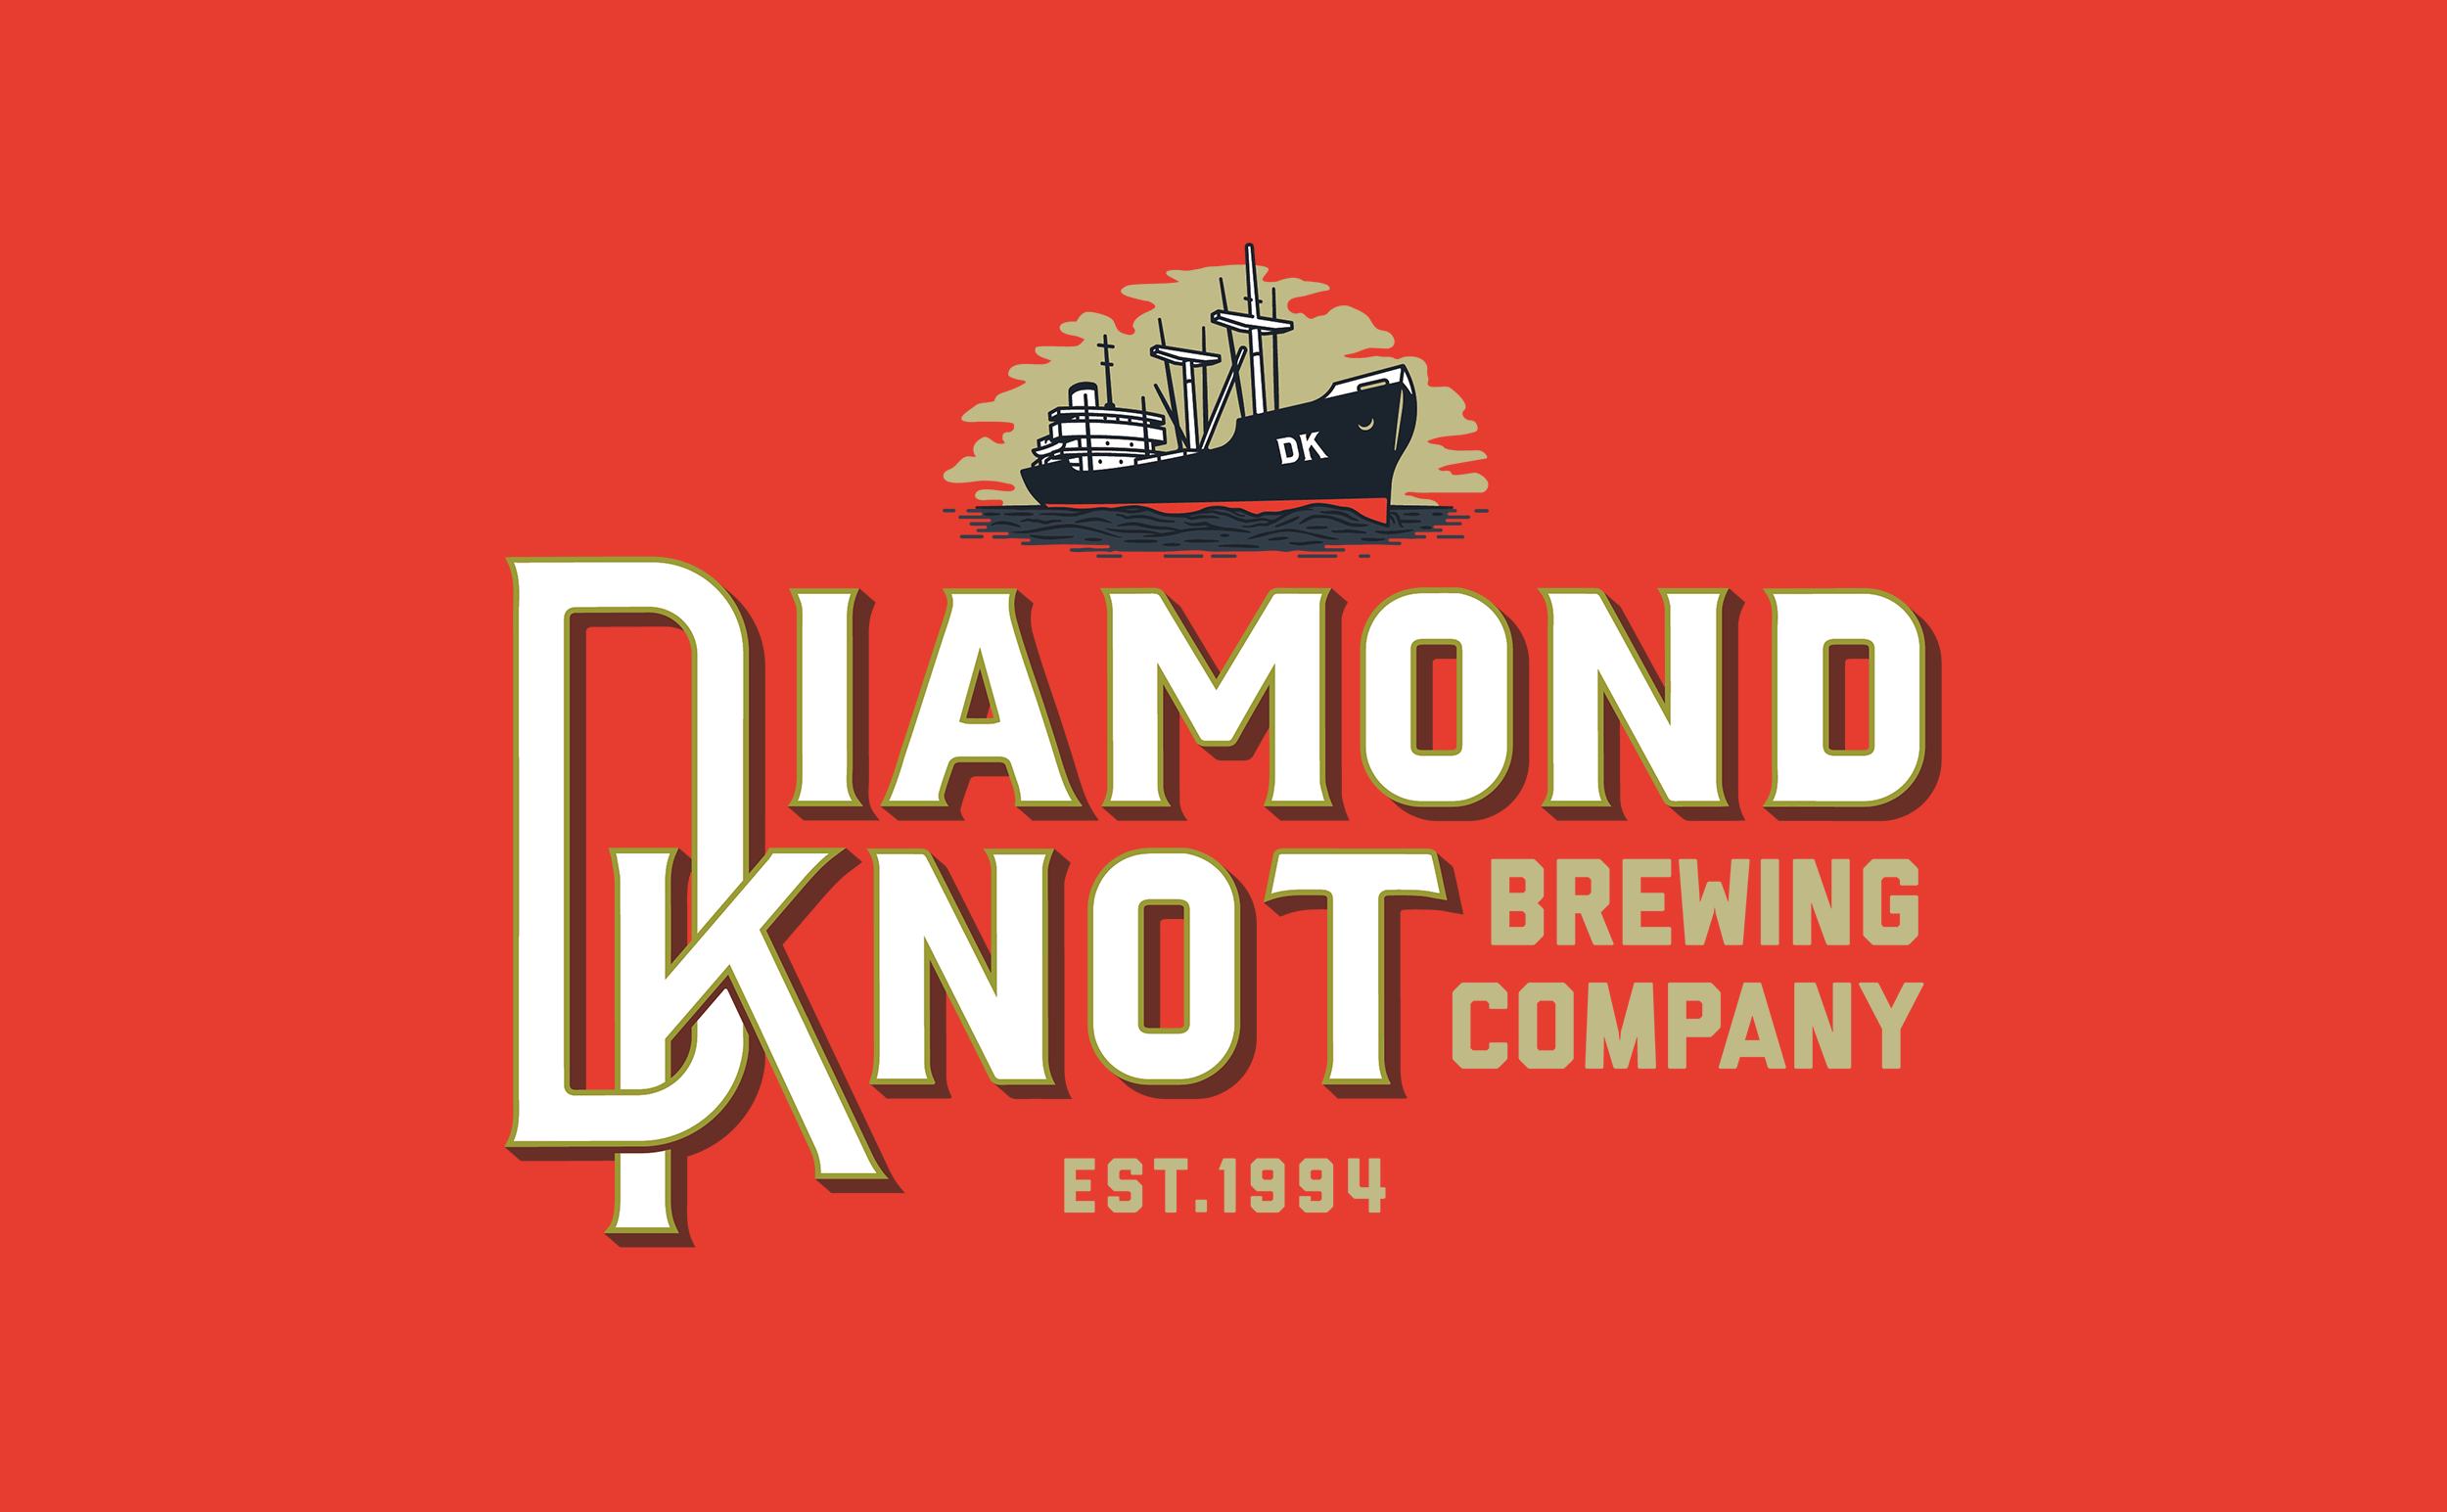 Blindtiger Design - Diamond Knot Brewing Co.3.png